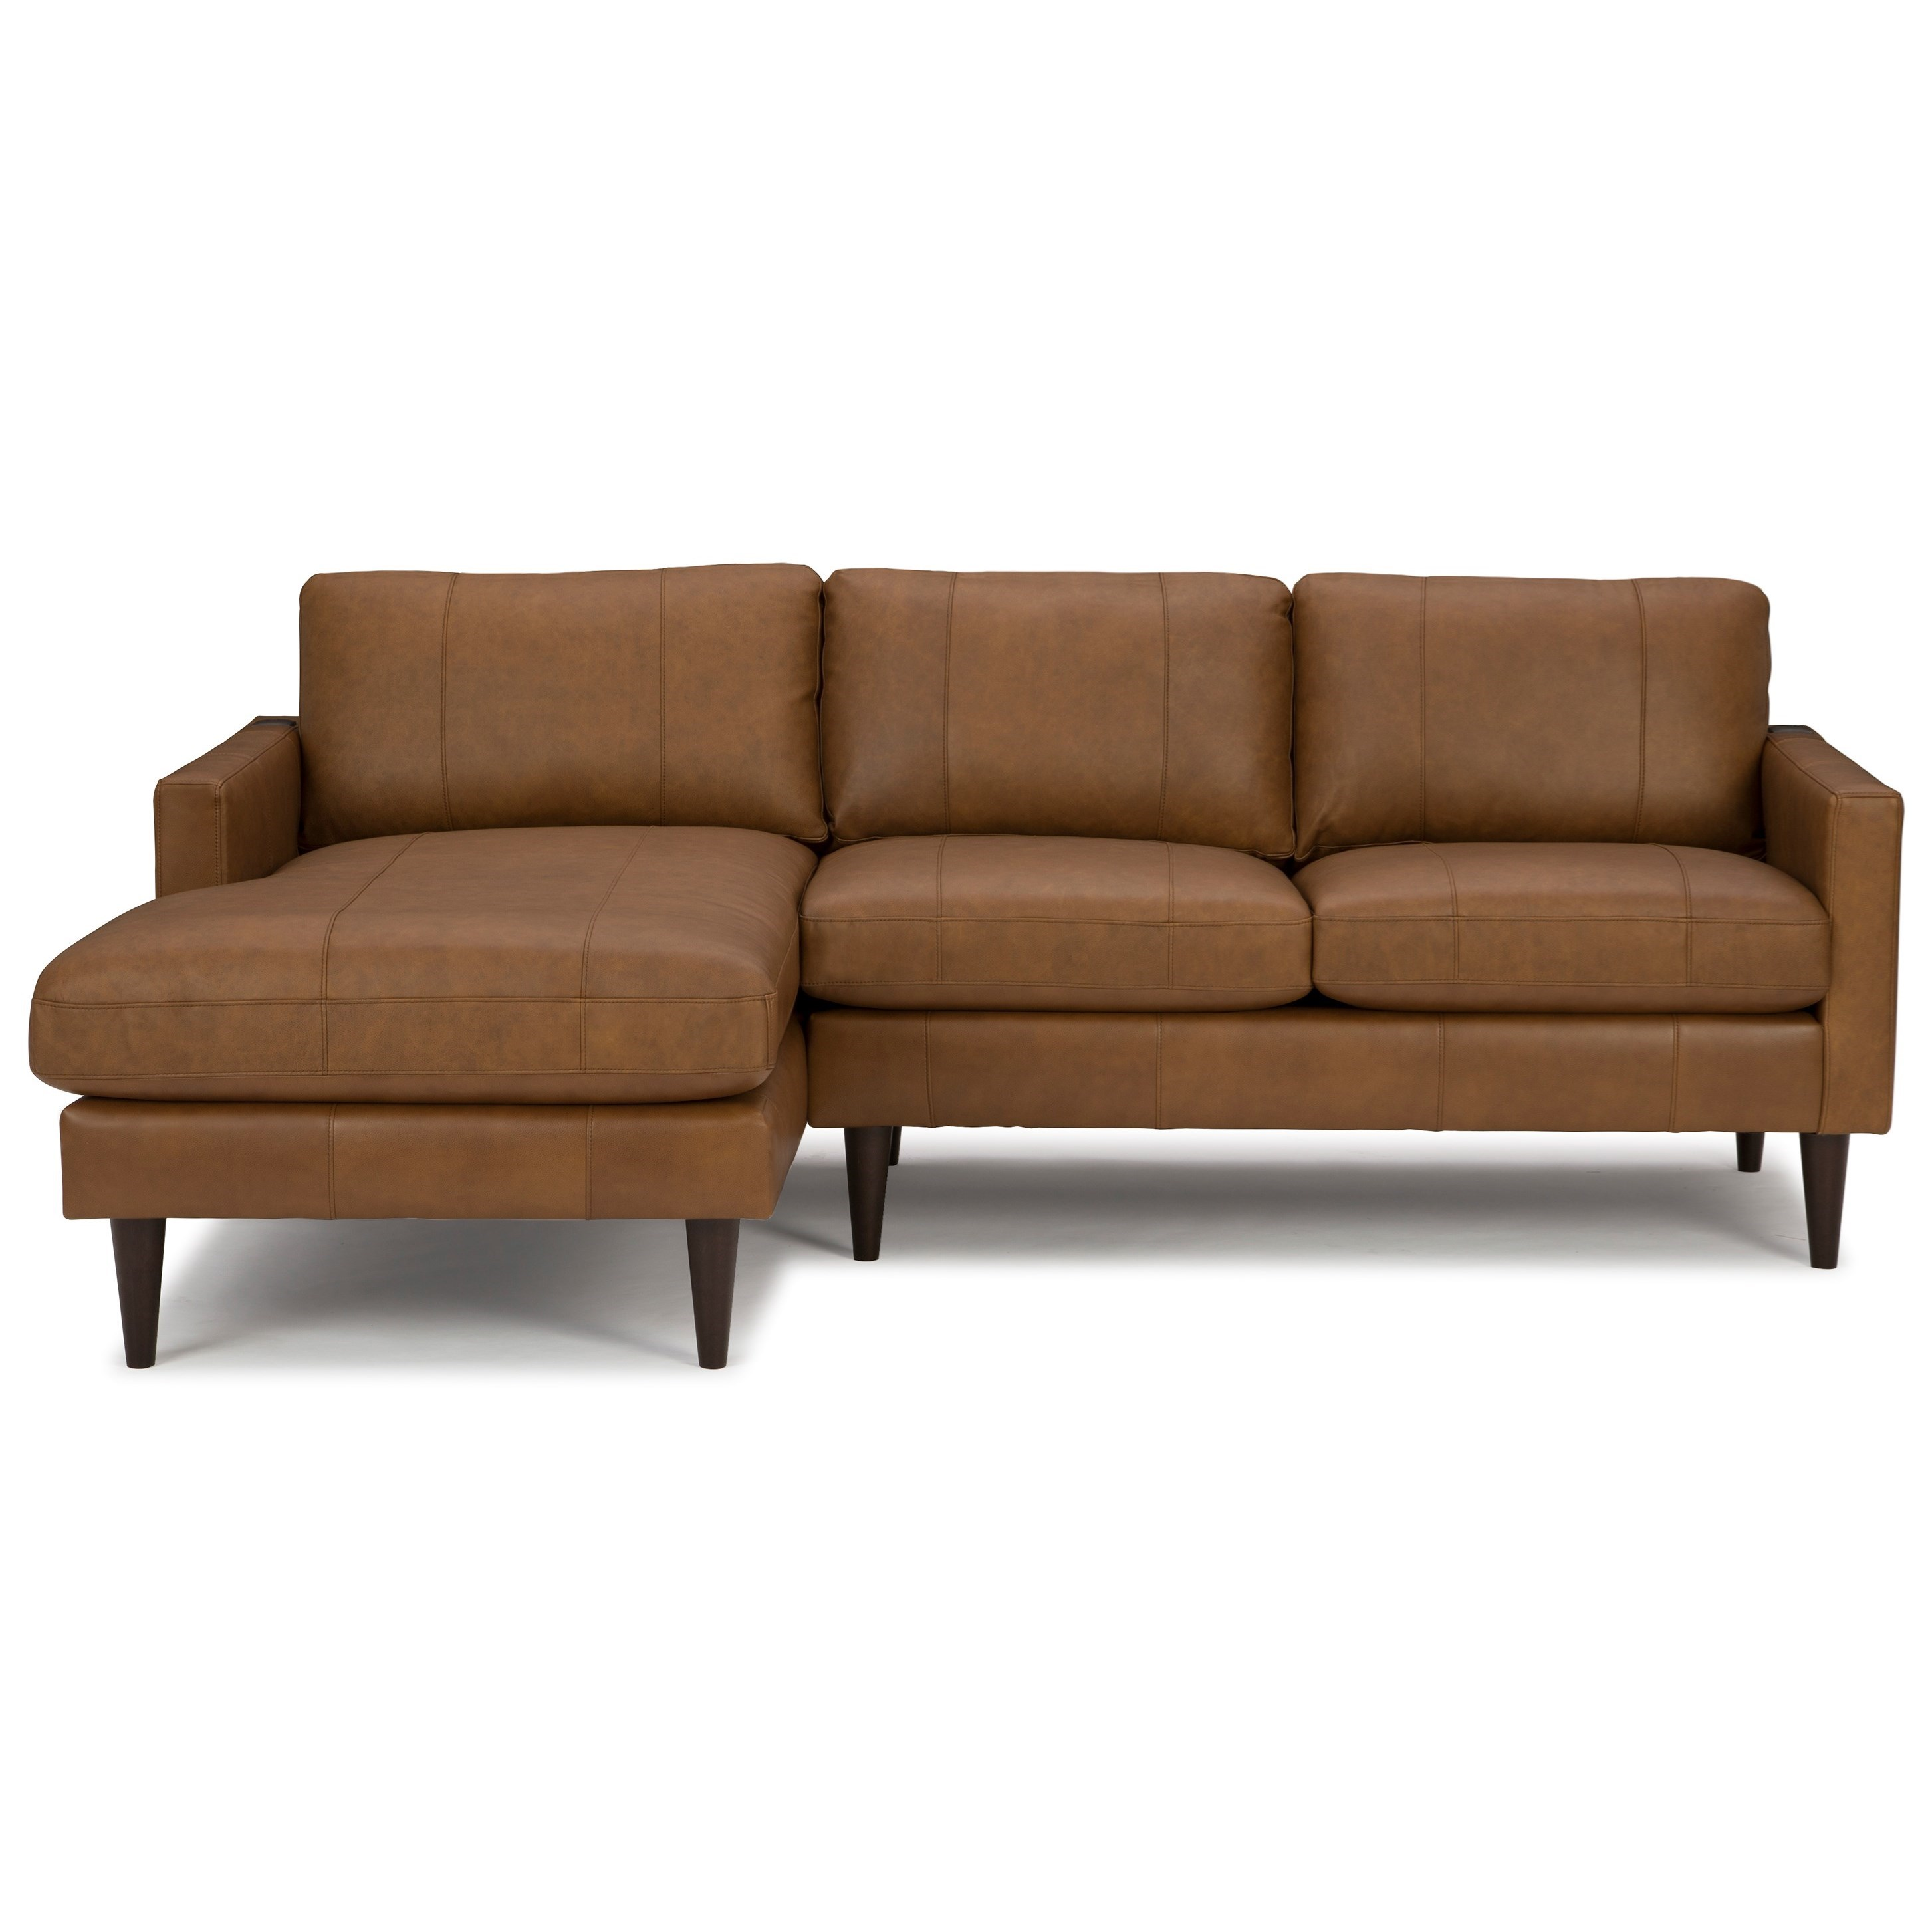 Trafton Chaise Sofa with LAF Chaise by Best Home Furnishings at Best Home Furnishings